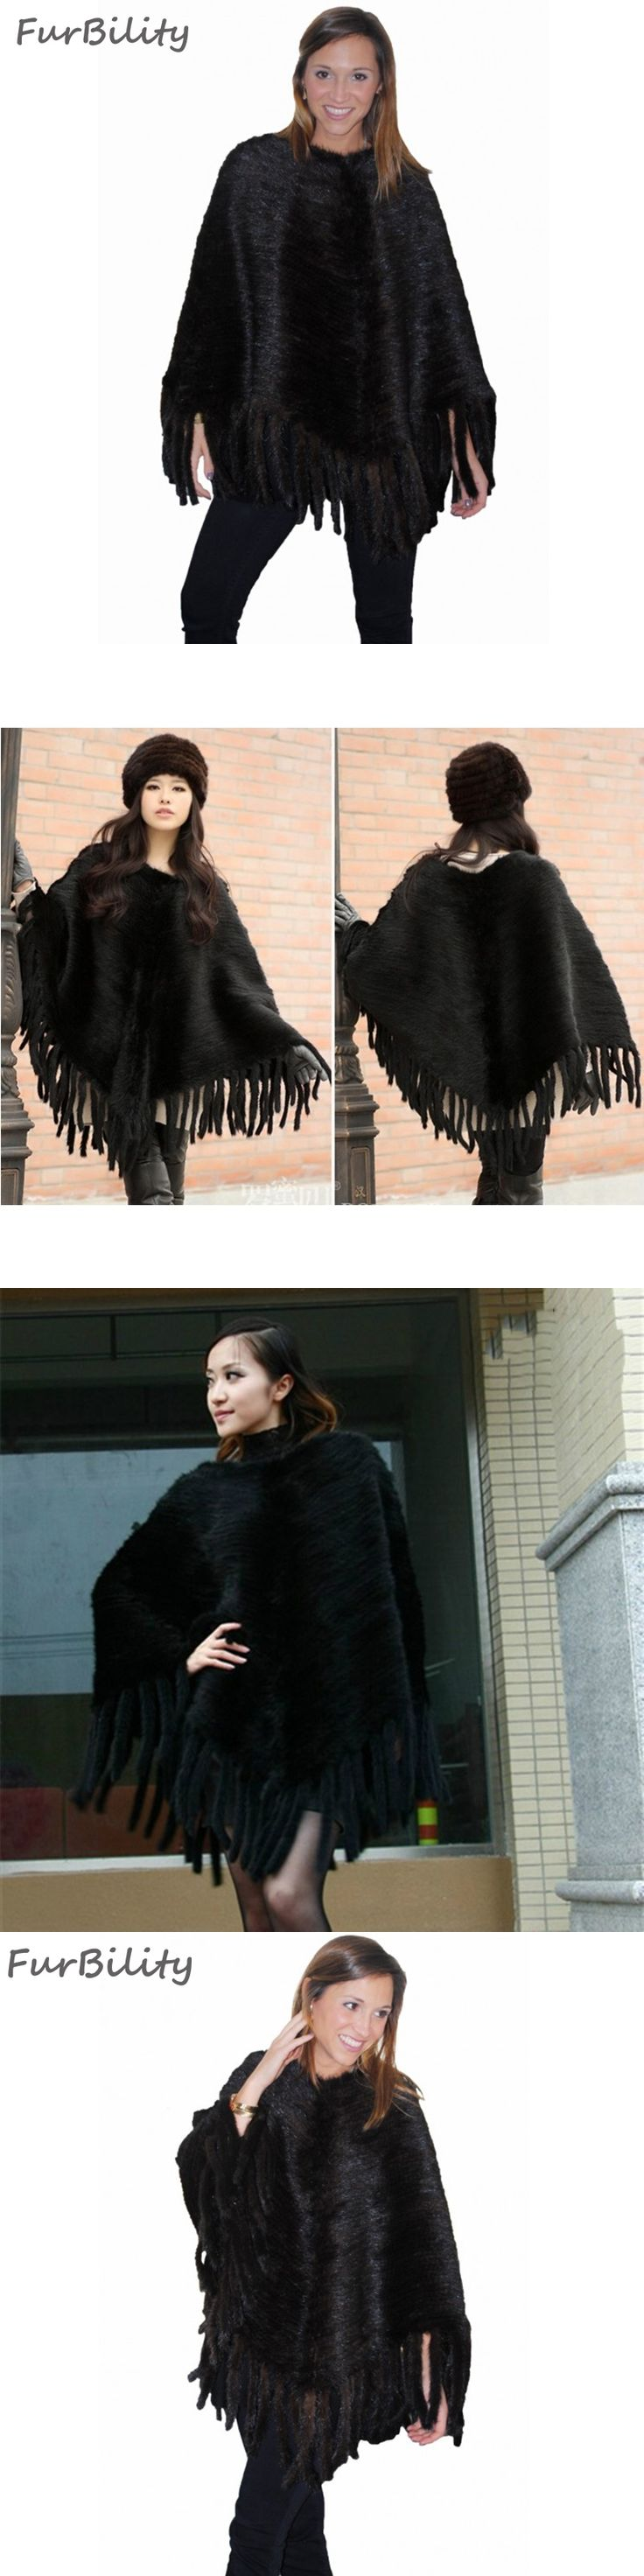 2017 New Arrival Female Knitted Mink Fur Cape Autumn Winter Pashmina With Tassel Women Fashion Luxury Poncho